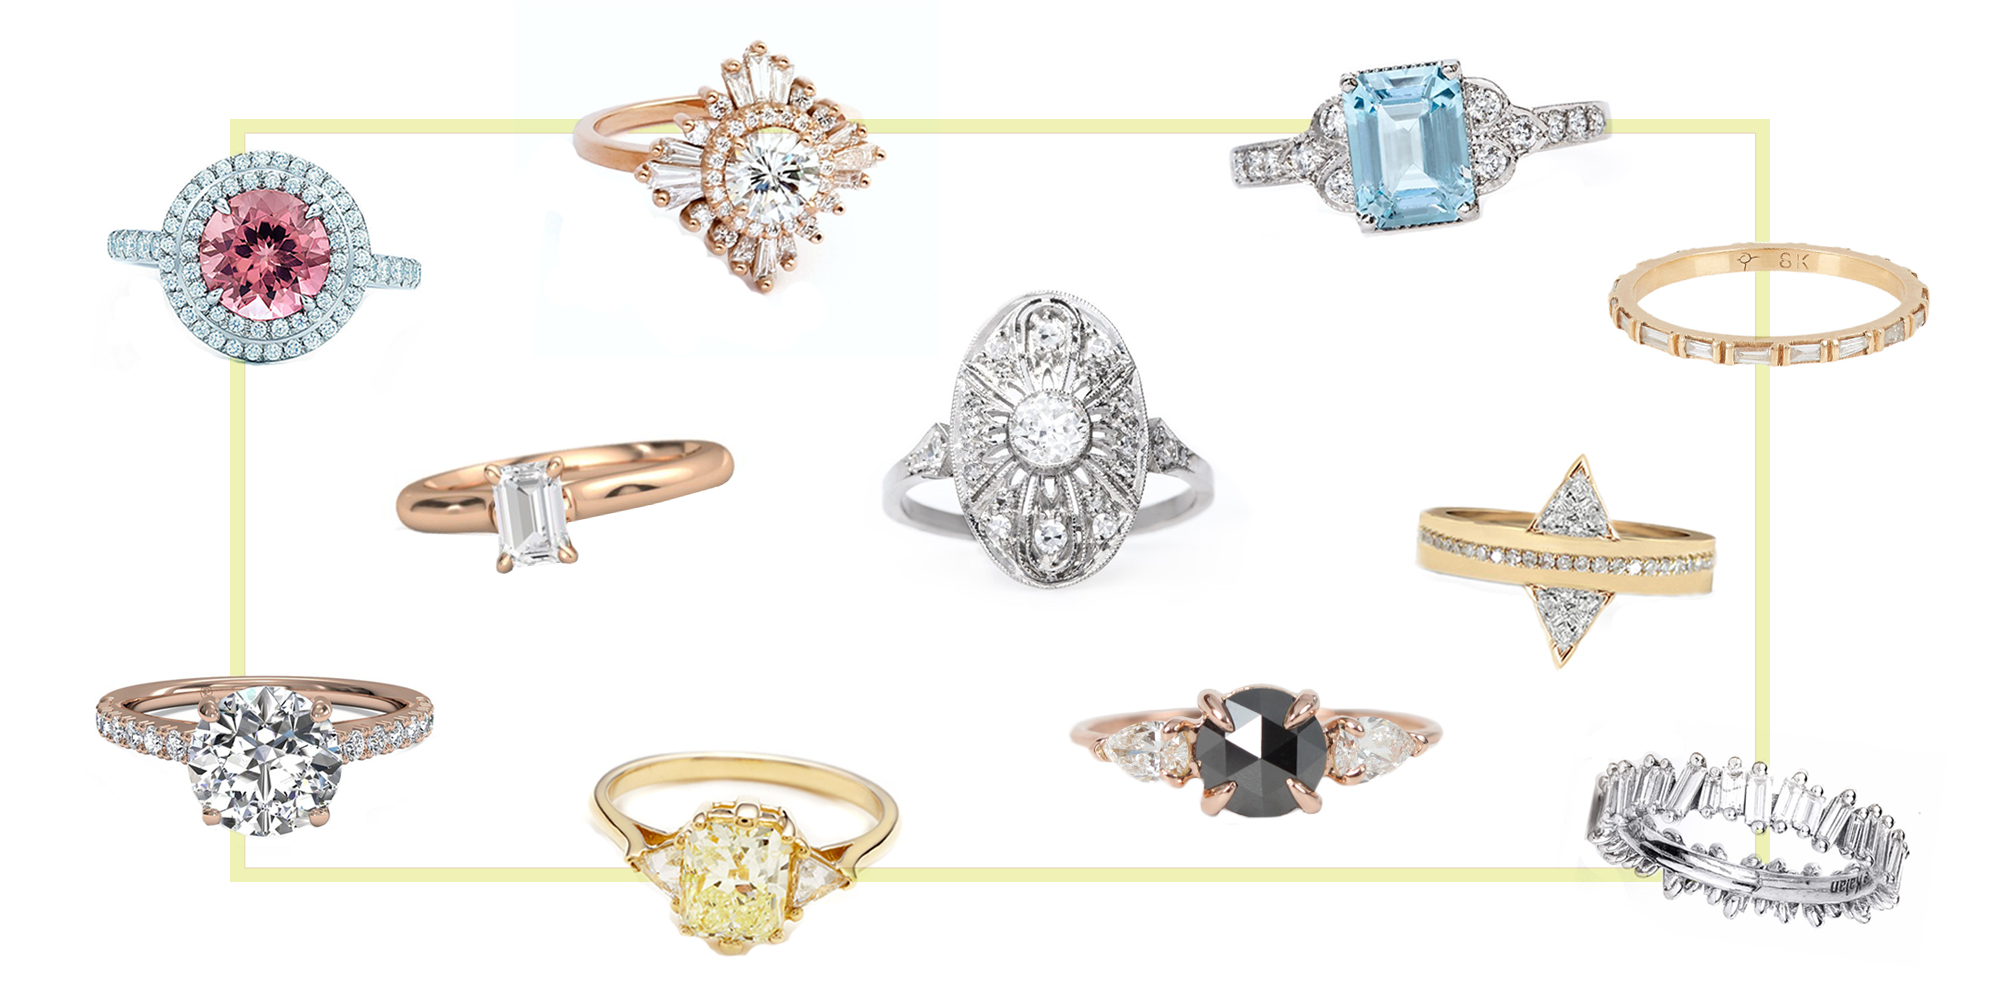 15 Best New Engagement Ring Styles In 2017 Vintage Non Traditional Engagement Rings